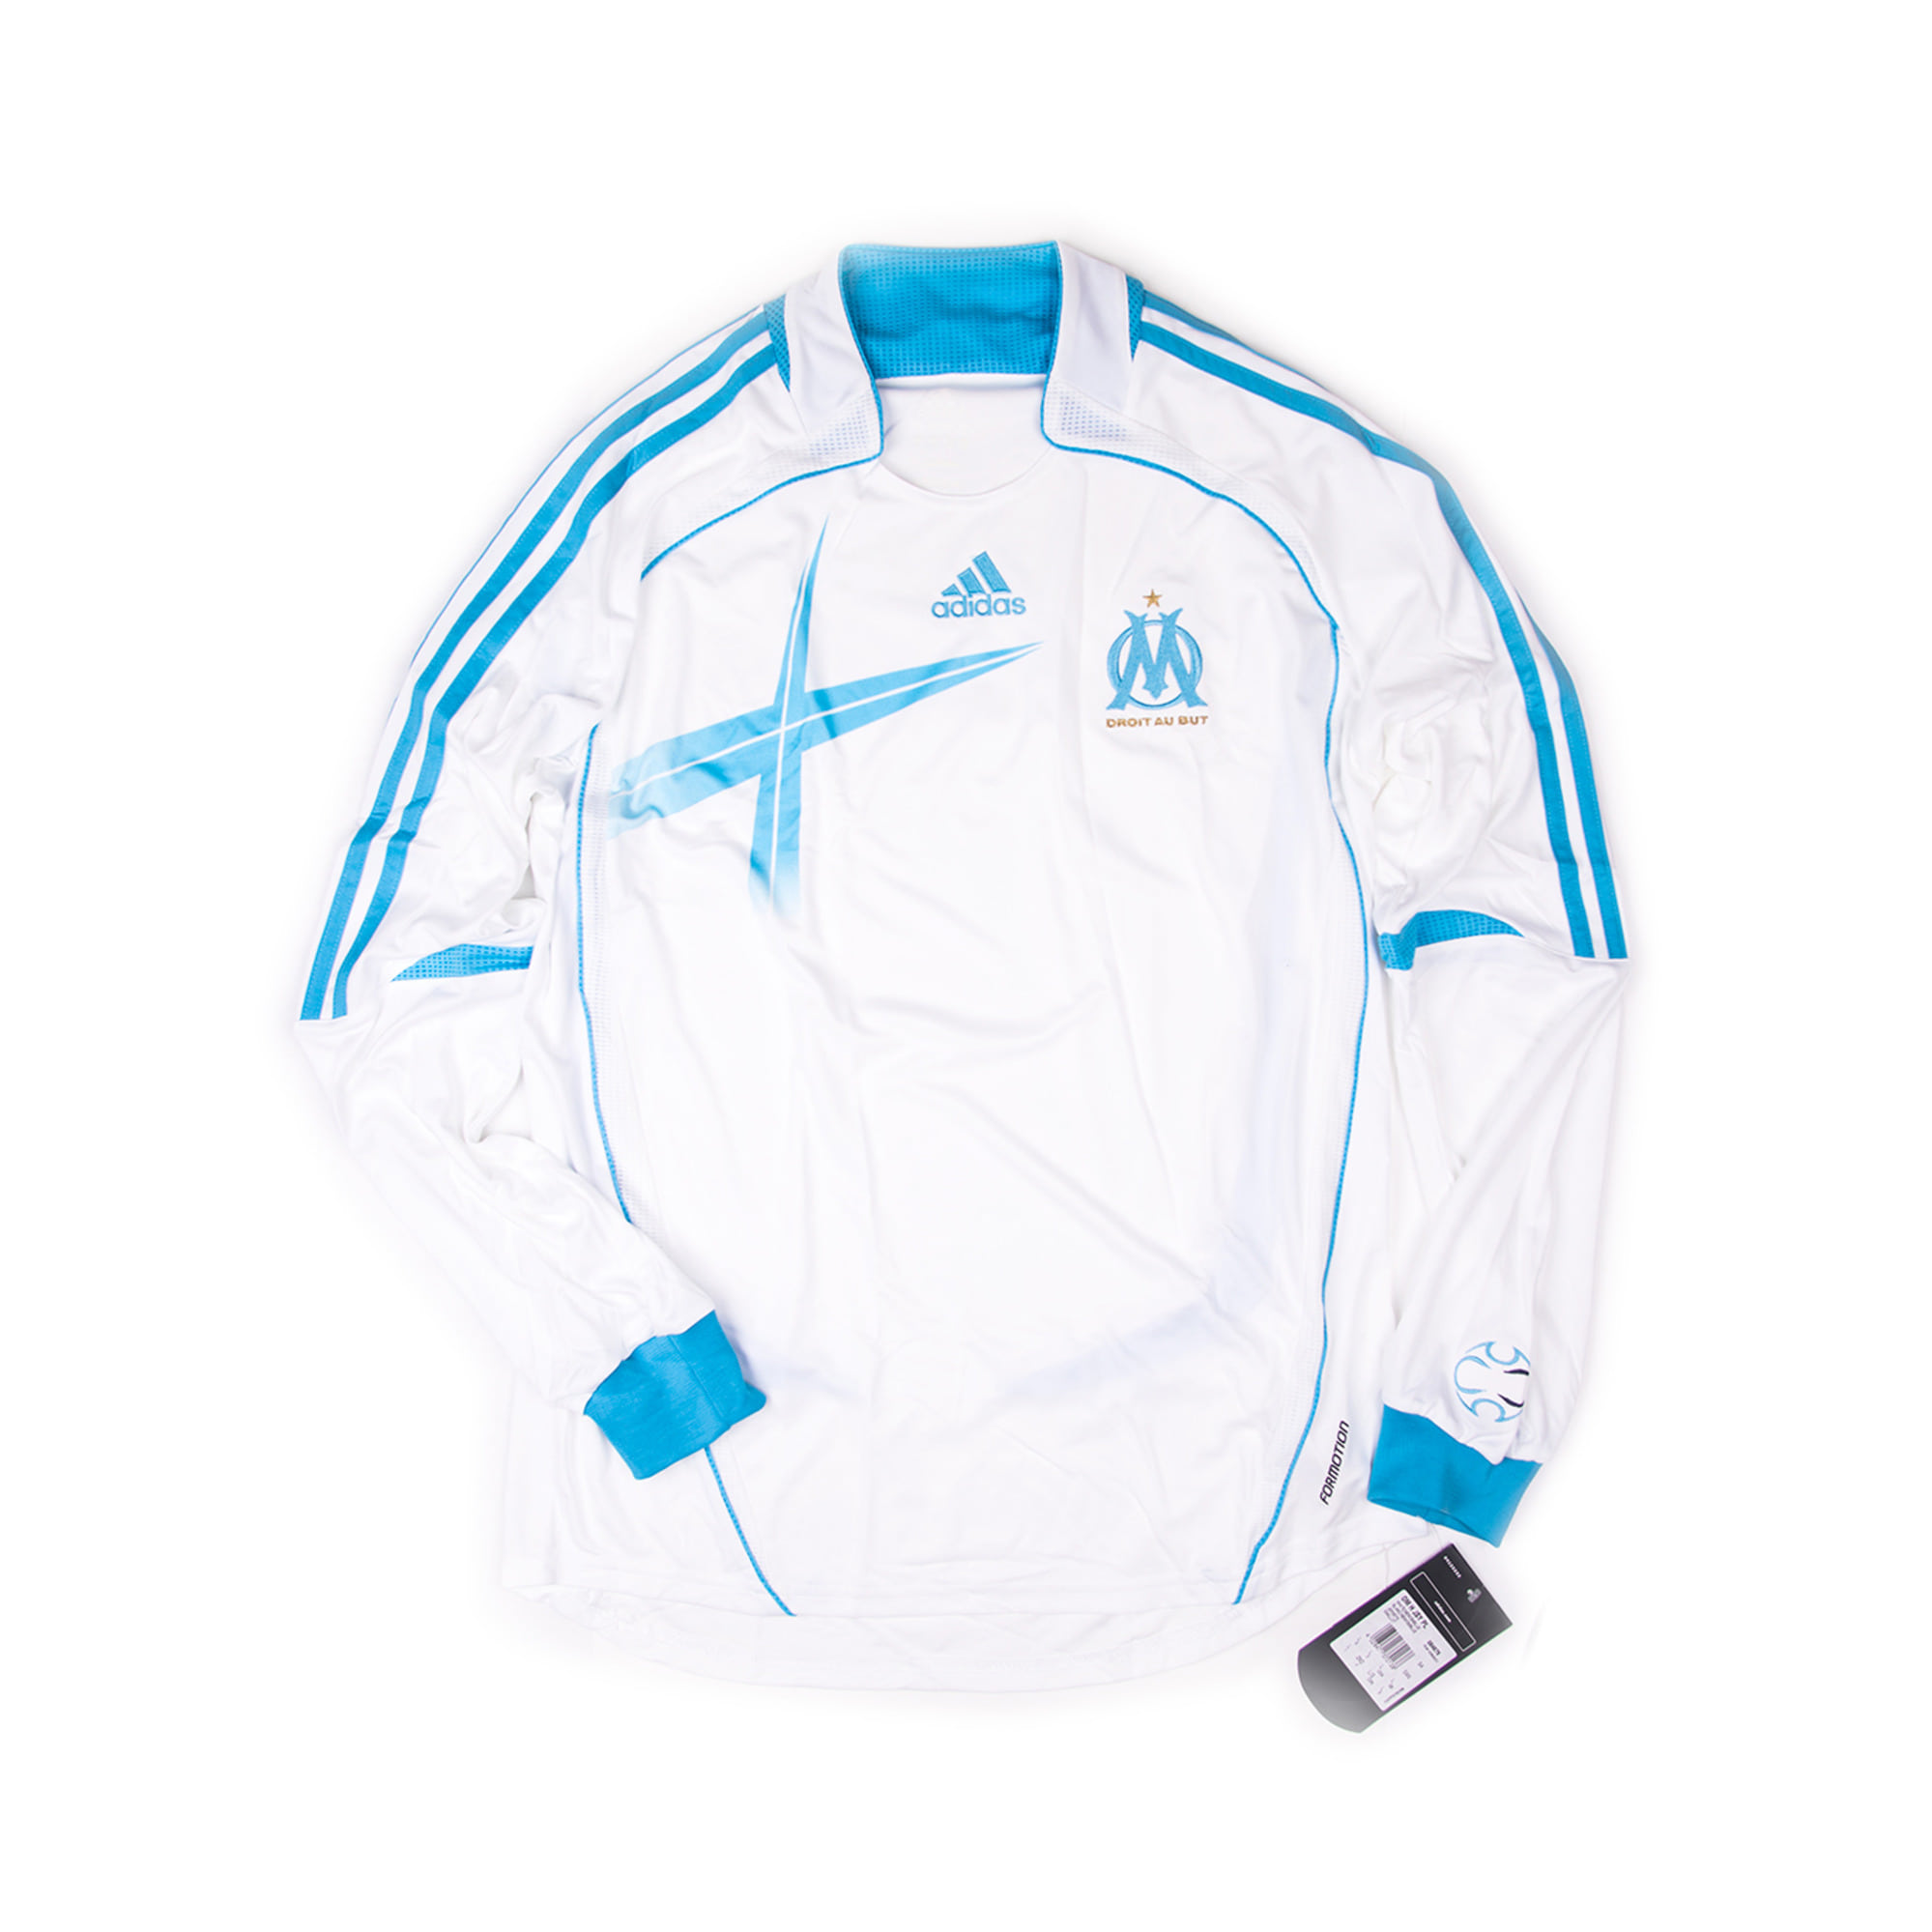 OLYMPIQUE MARSEILLE 2006-07 AWAY L/S JERSEY (Player Issued, BNWT)